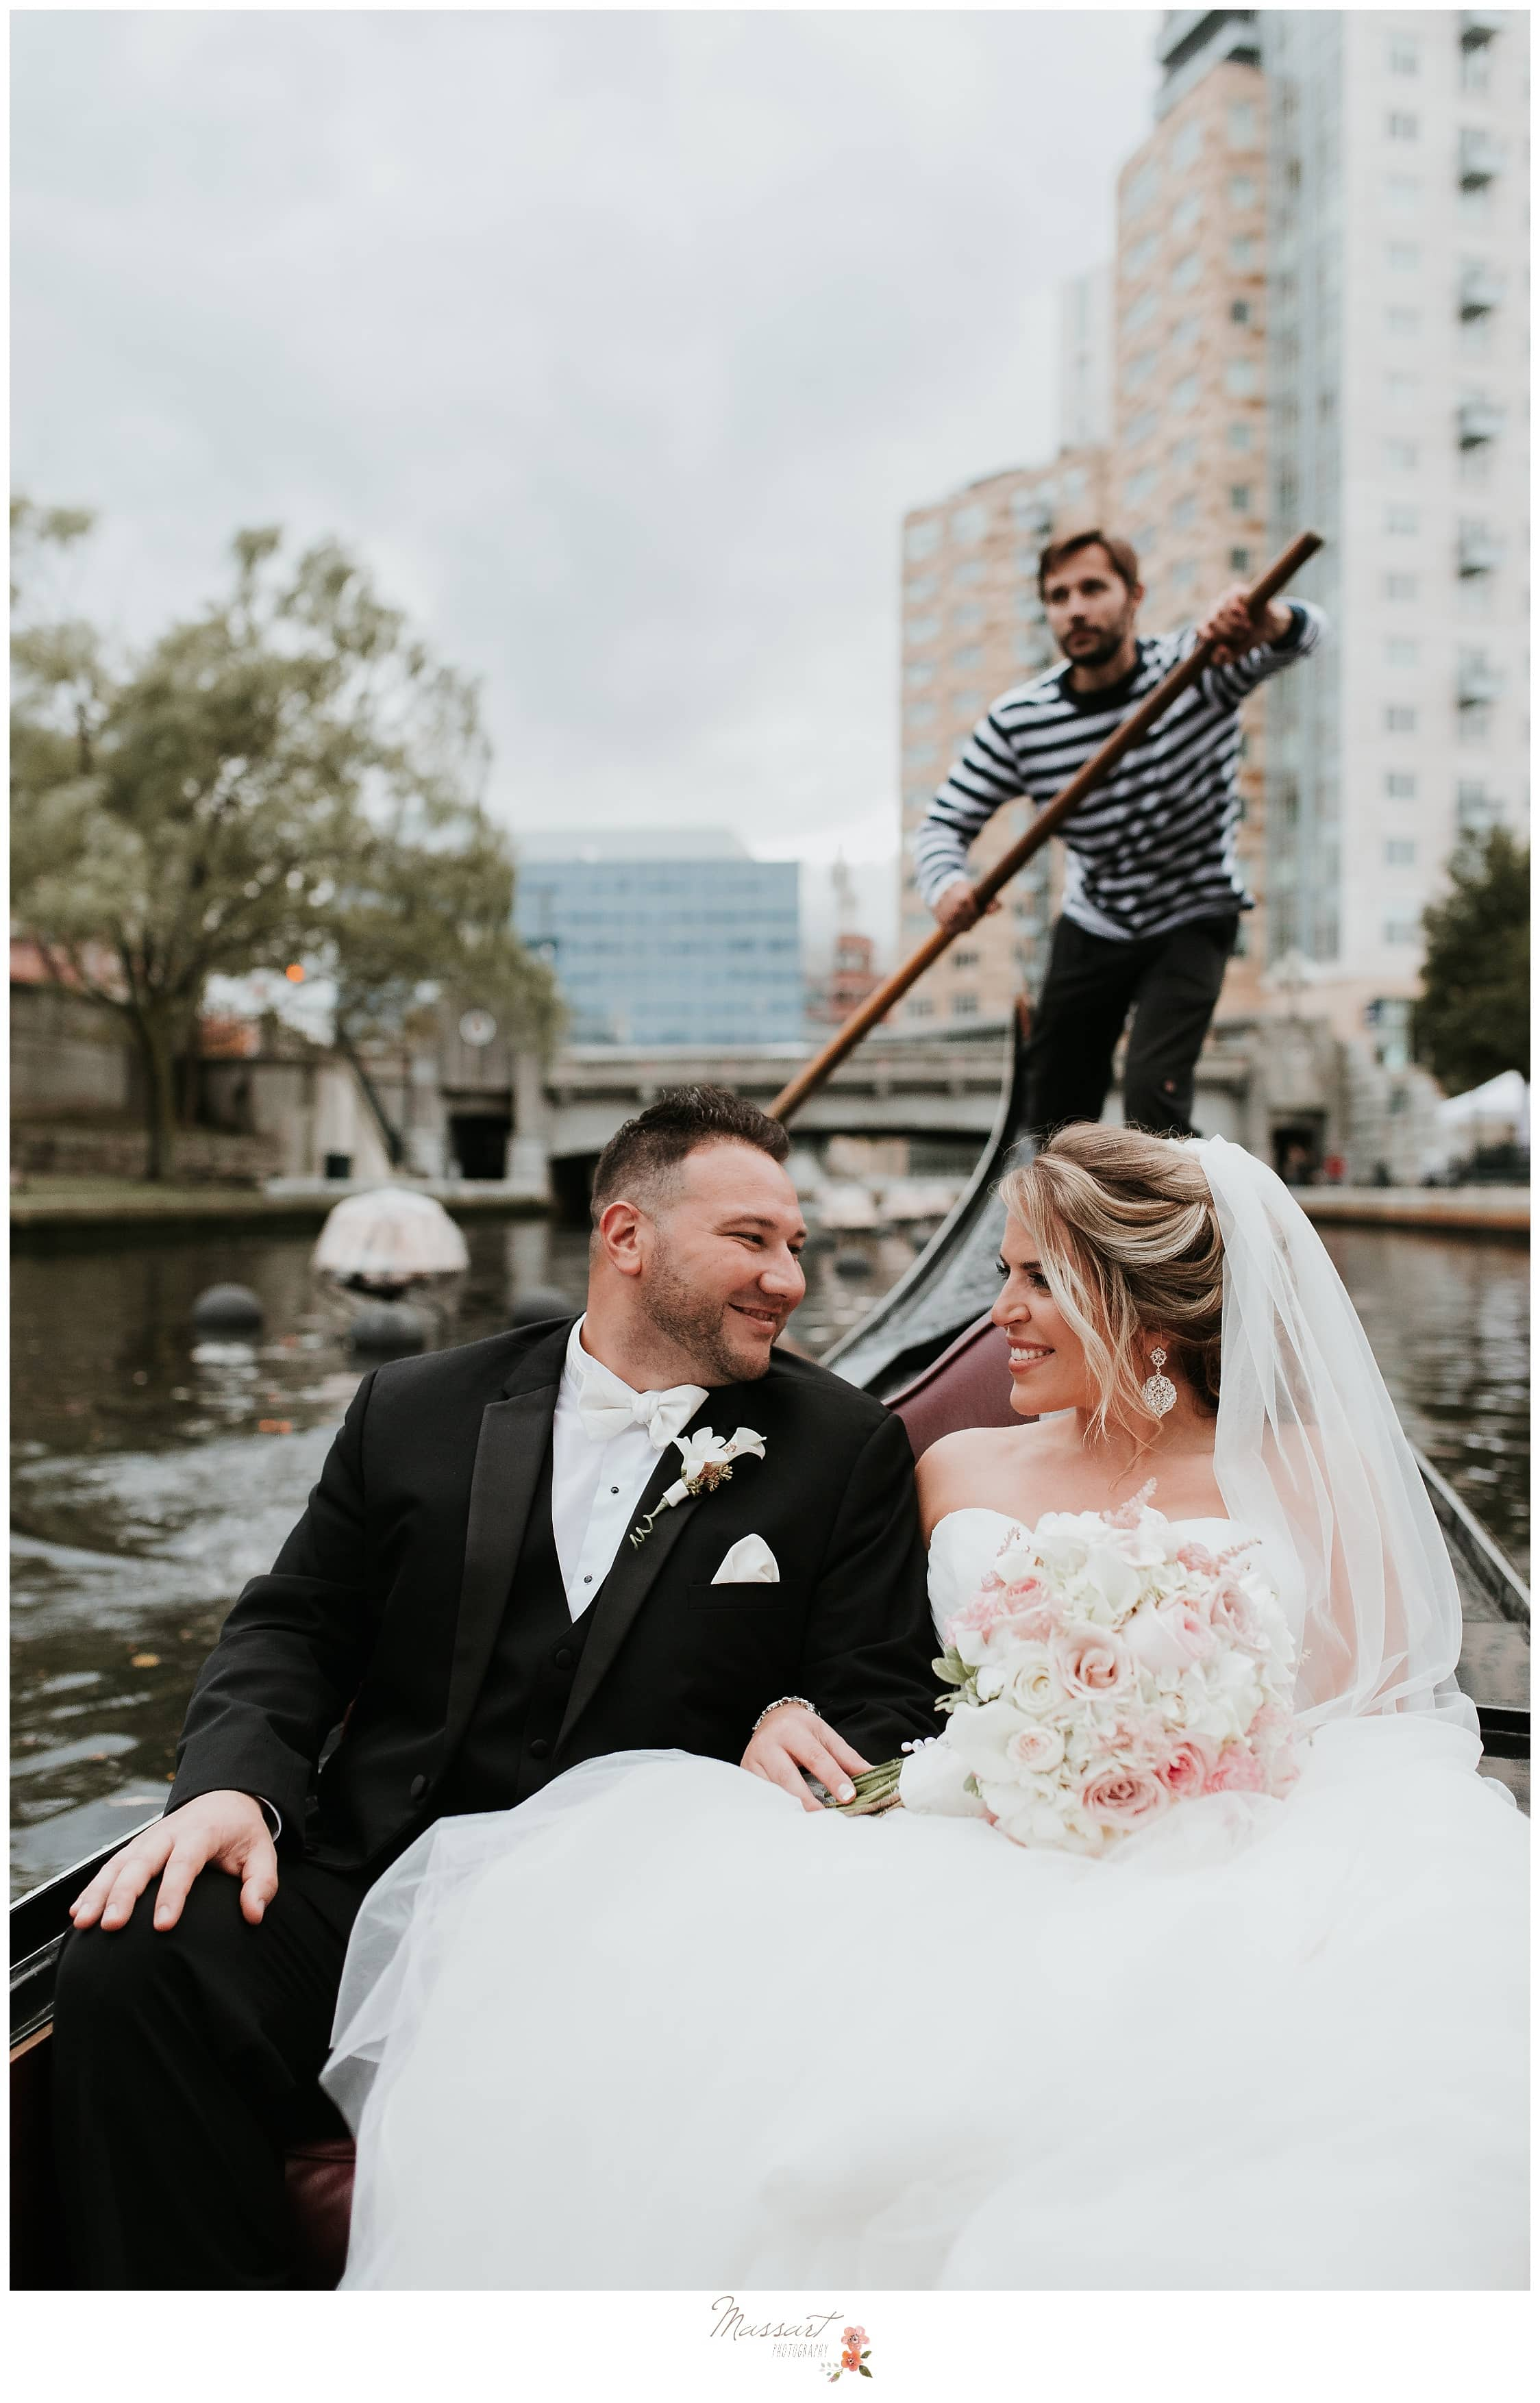 Romantic gondola ride around the river with the newlyweds photographed by Massart Photography RI